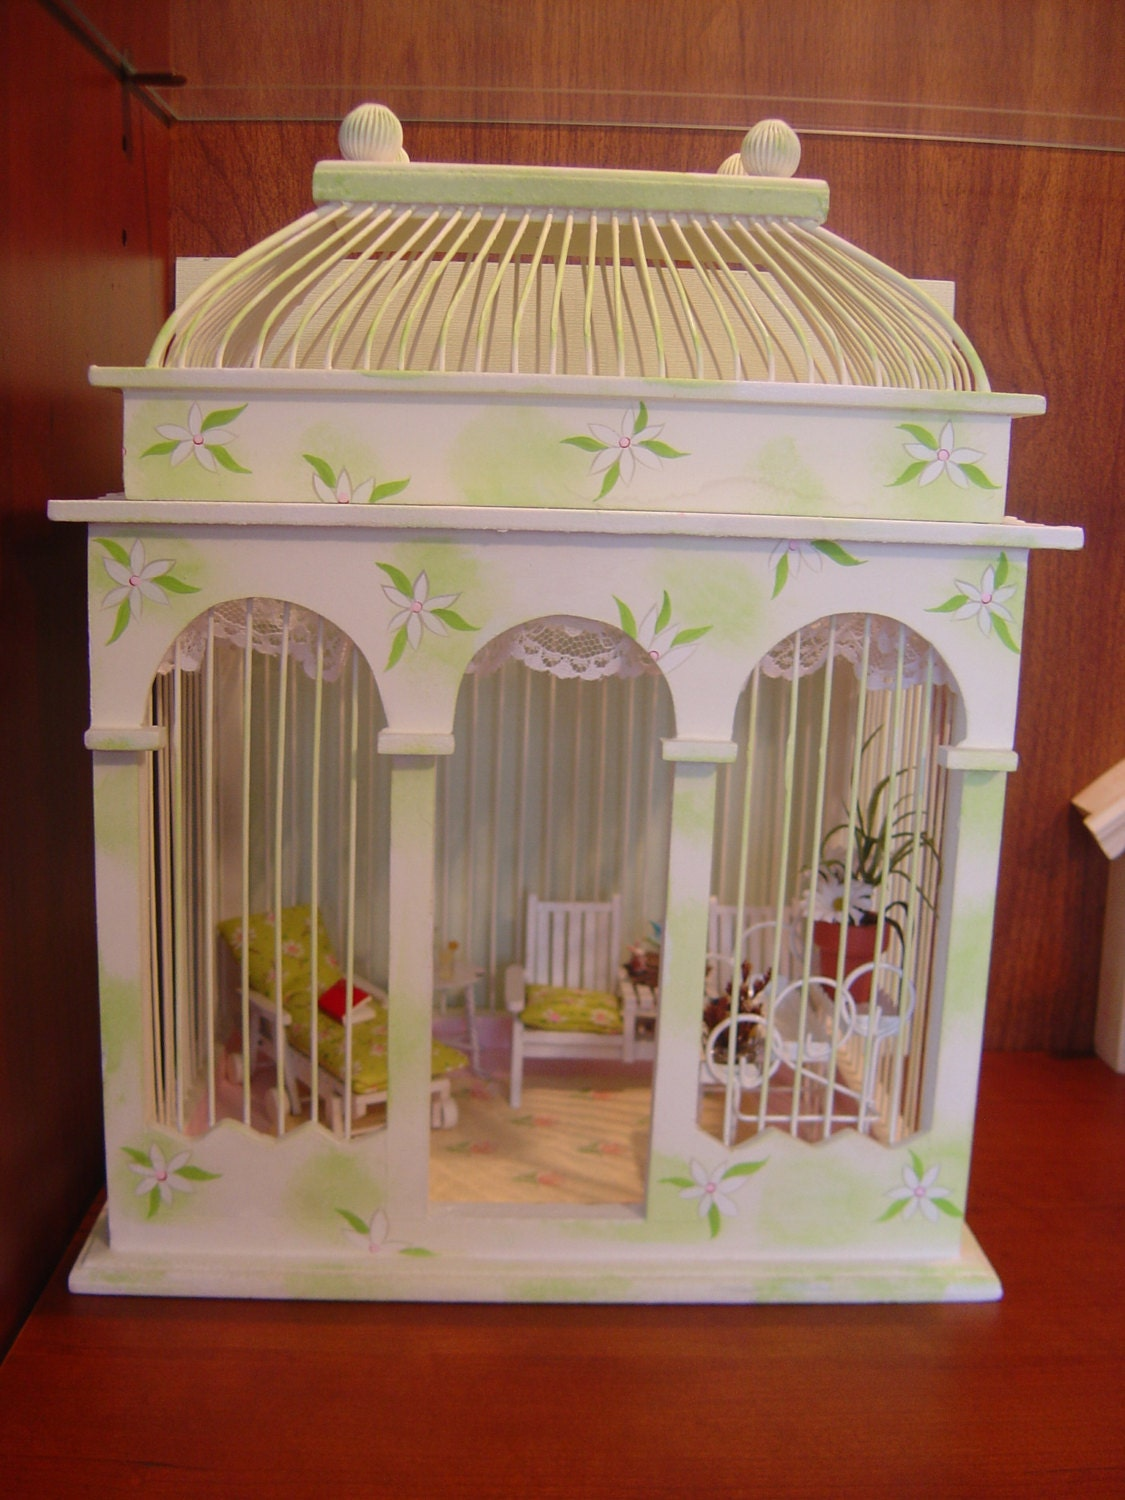 Kitchen Diorama Made Of Cereal Box: Dollhouse Gazebo / Room Box / Diorama Miniature Reading Room